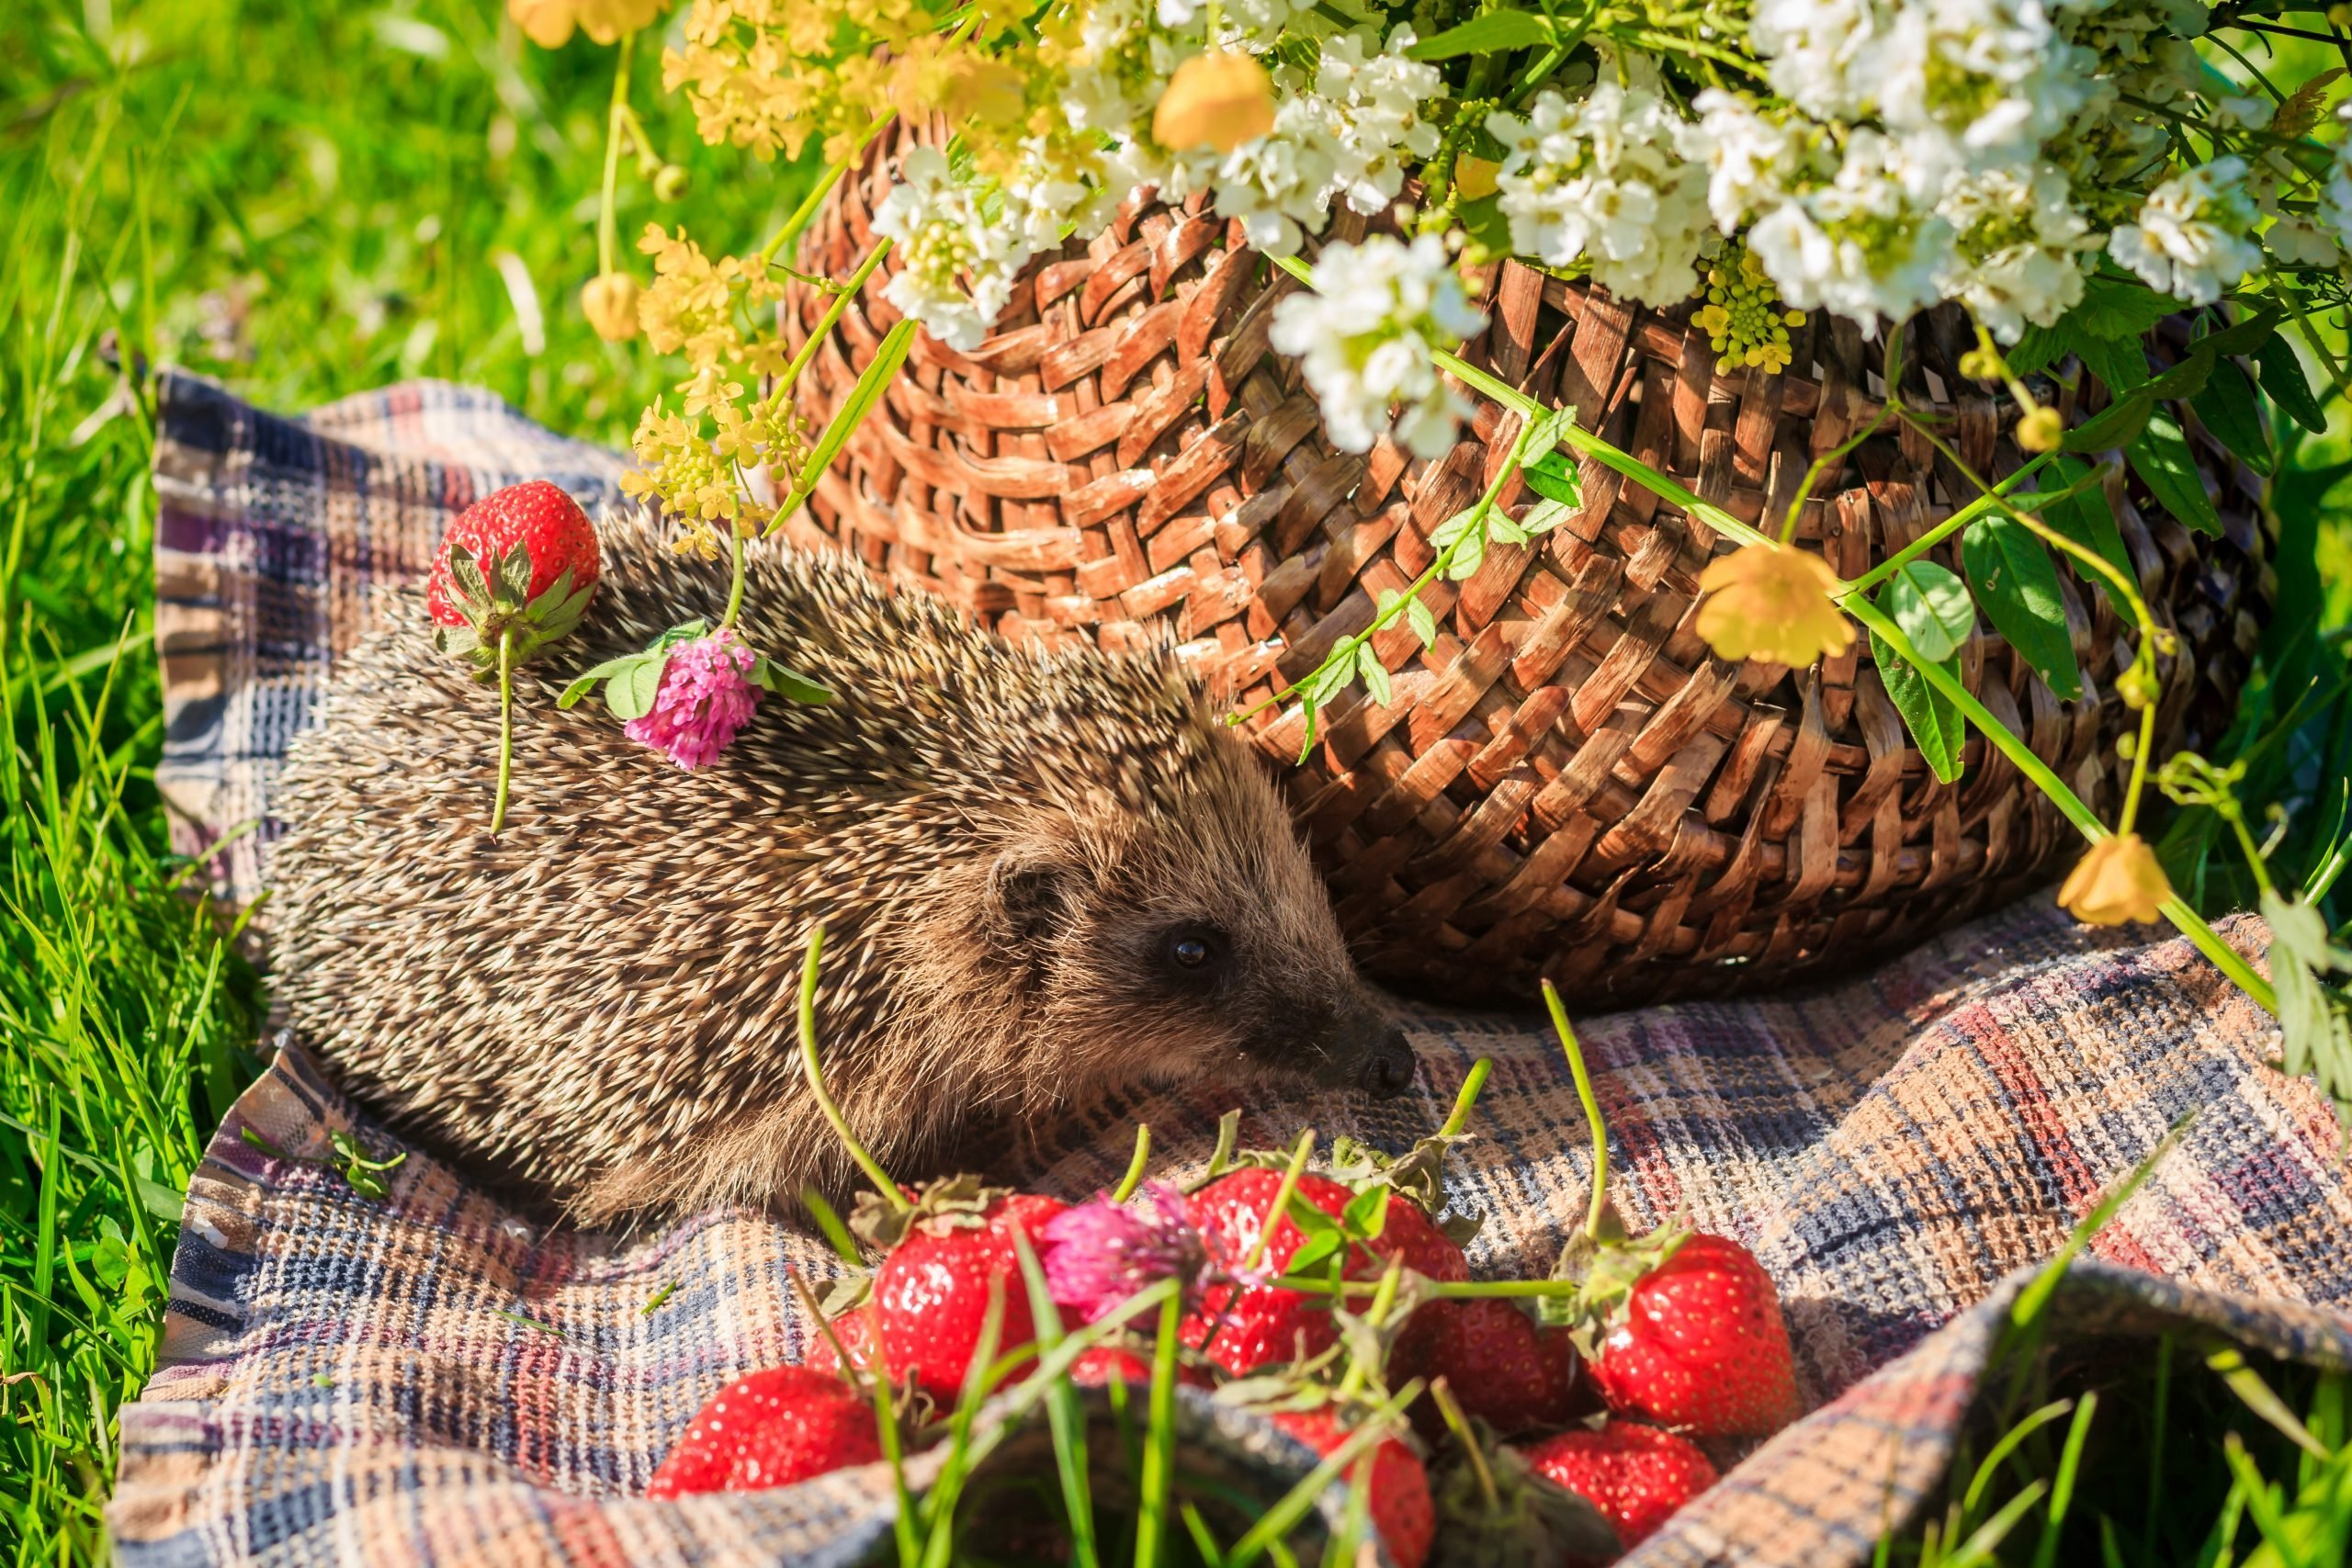 Hedgehog in the grass with strawberries on the background of a basket wicker,